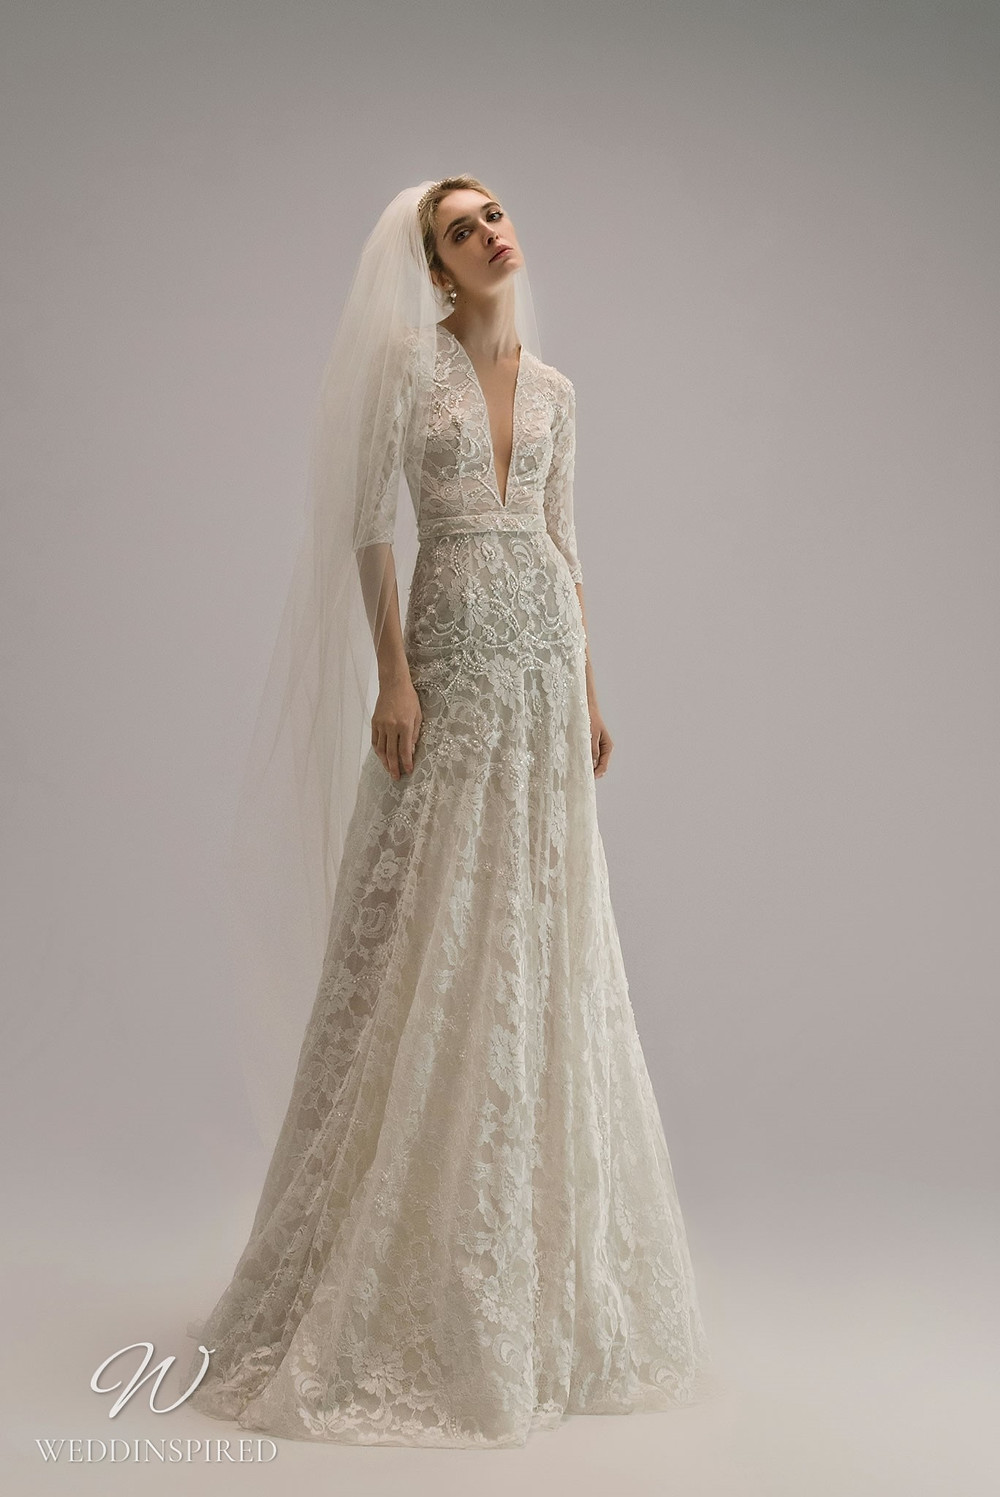 An Ersa Atelier 2021 lace A-line wedding dress with half sleeves and a v neck